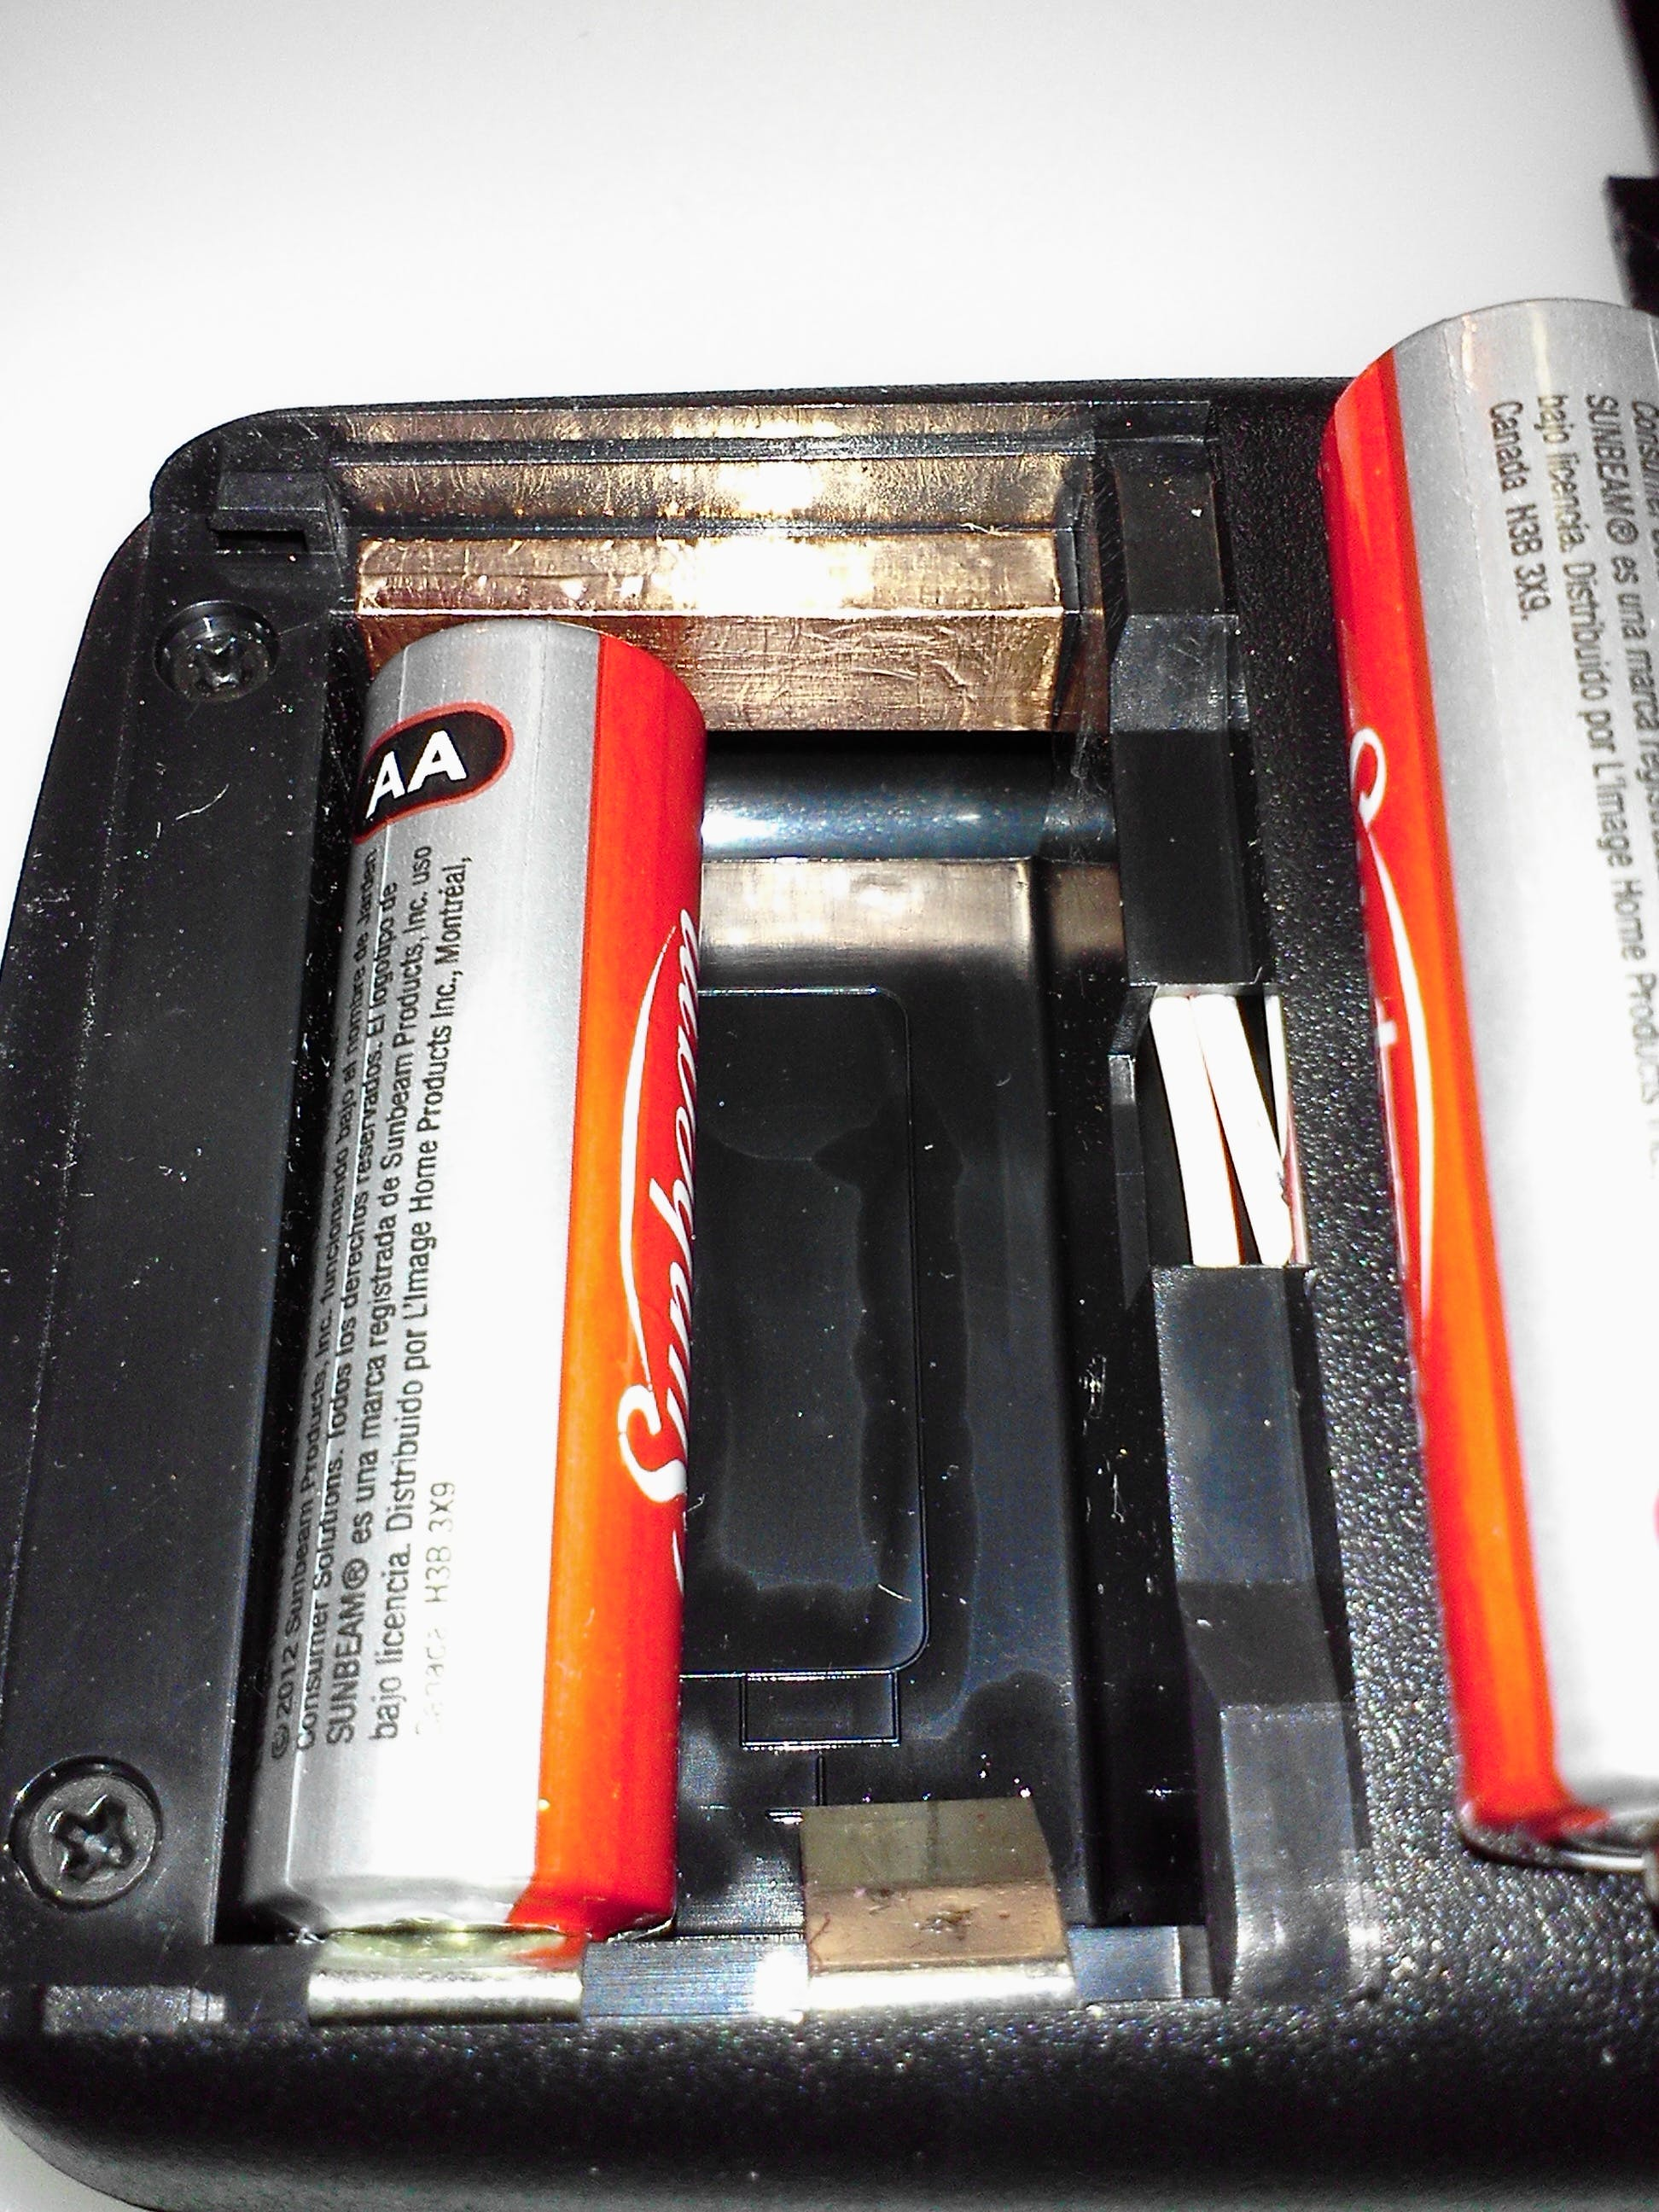 How to use AA in 9V compartment